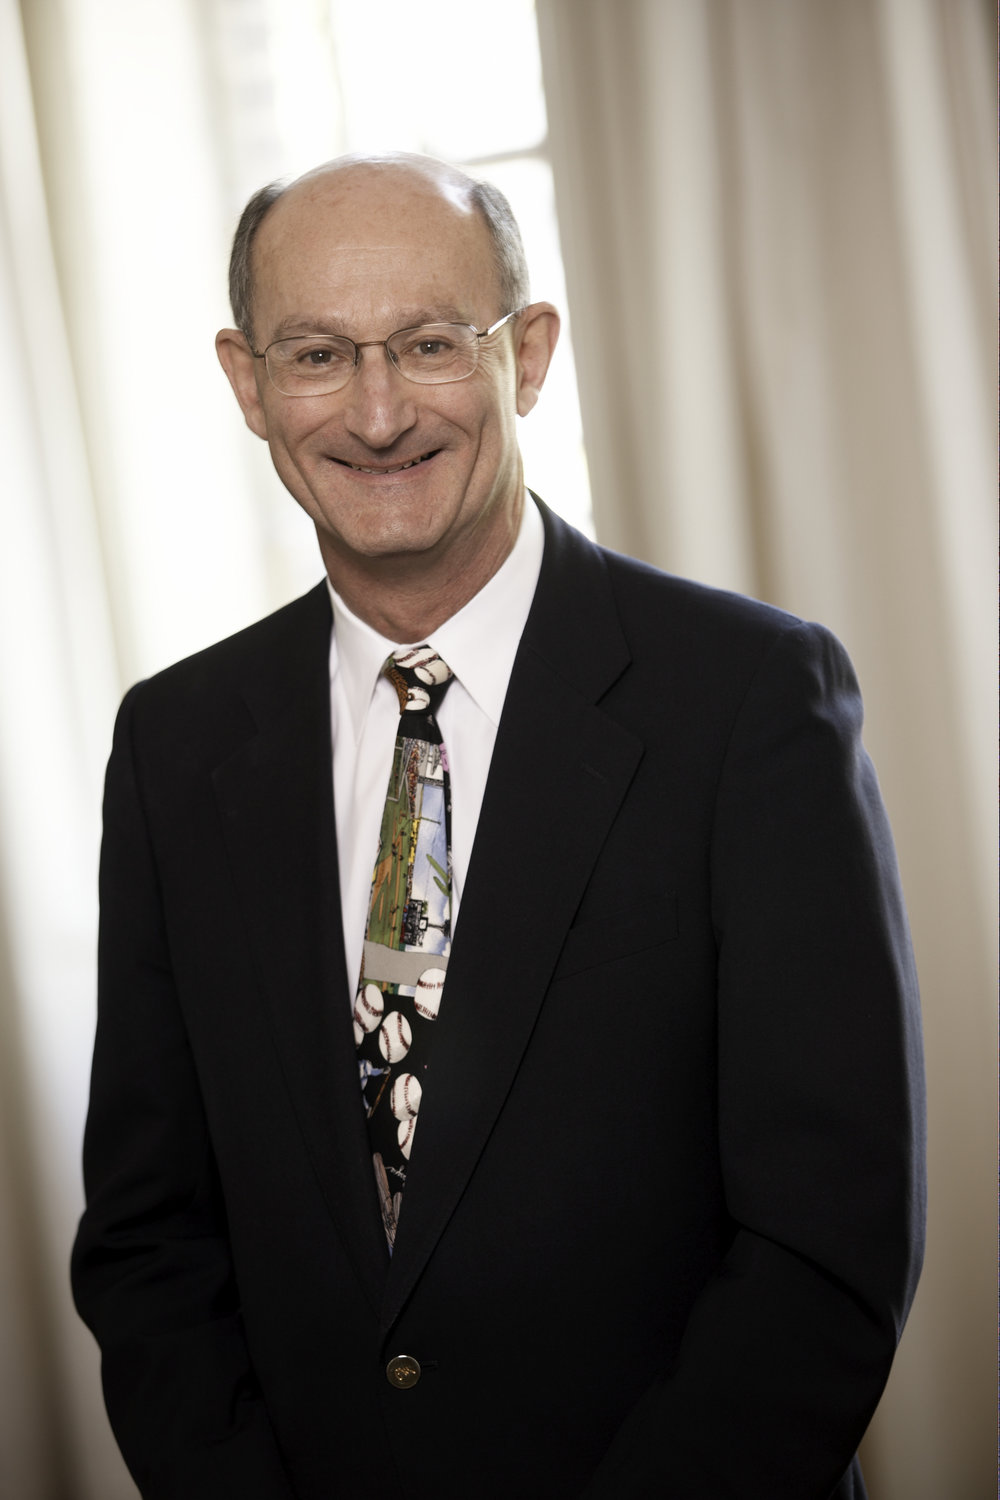 Dare to Compete Keynote - David Posen Headshot.jpg